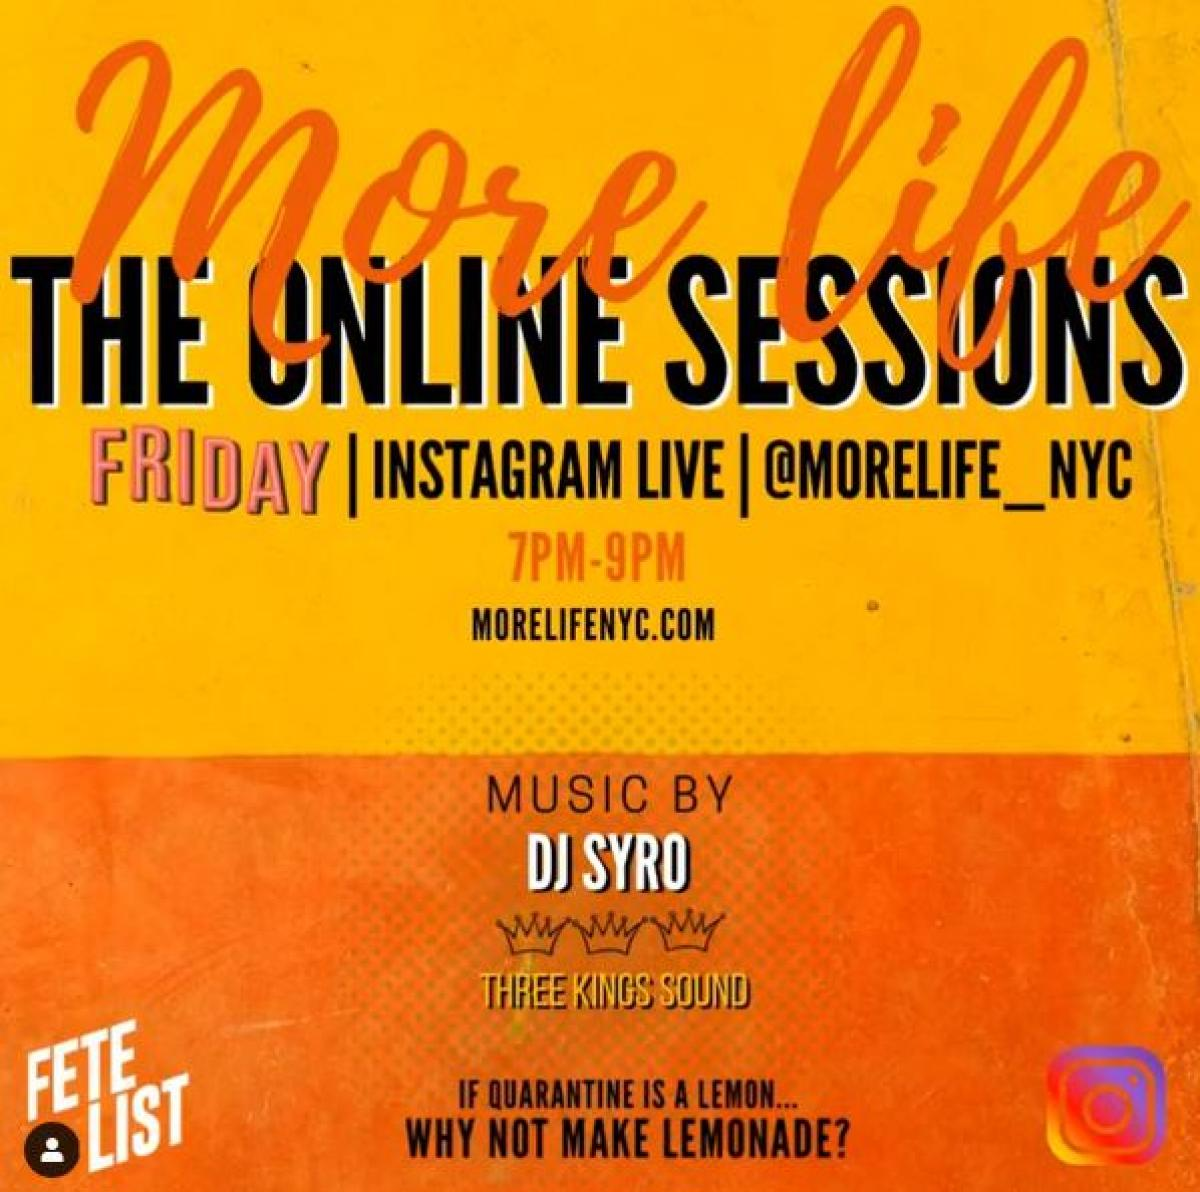 The Online Session flyer or graphic.